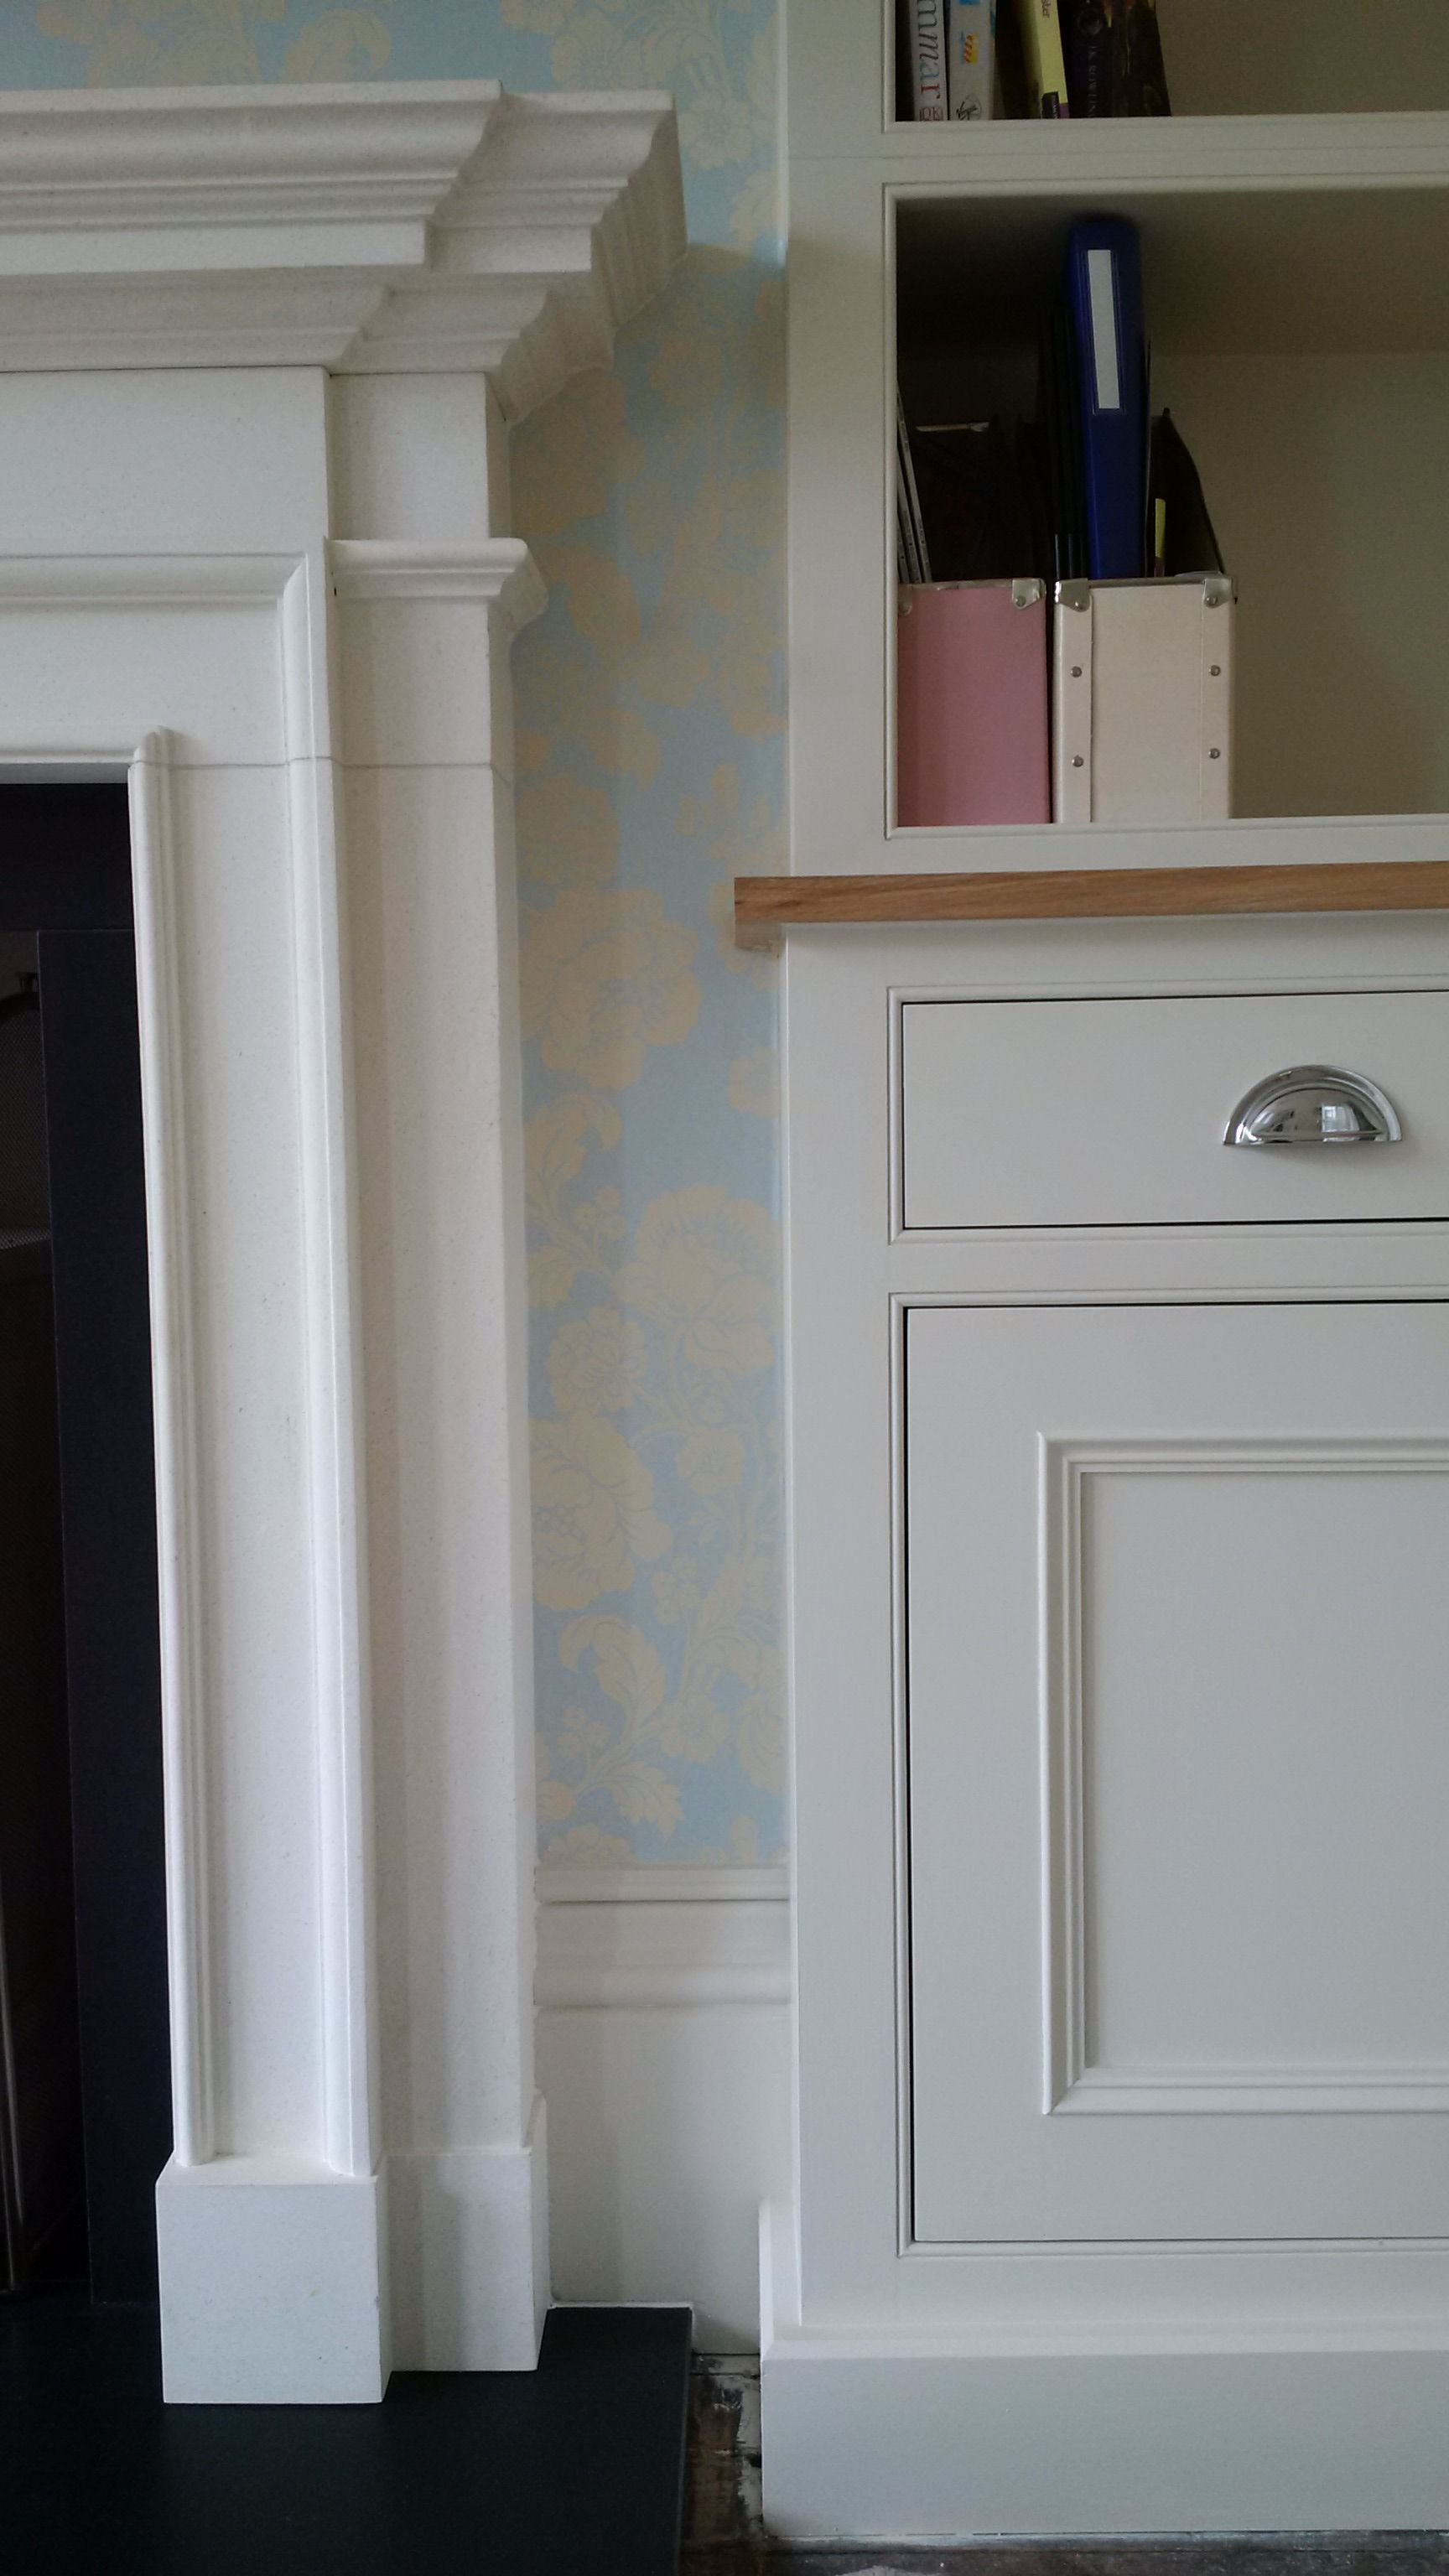 e7a98d6c5 Hand painted in Farrow & Ball Slipper Satin. Made from tulipwood with  American Oak tops in natural lacquer.